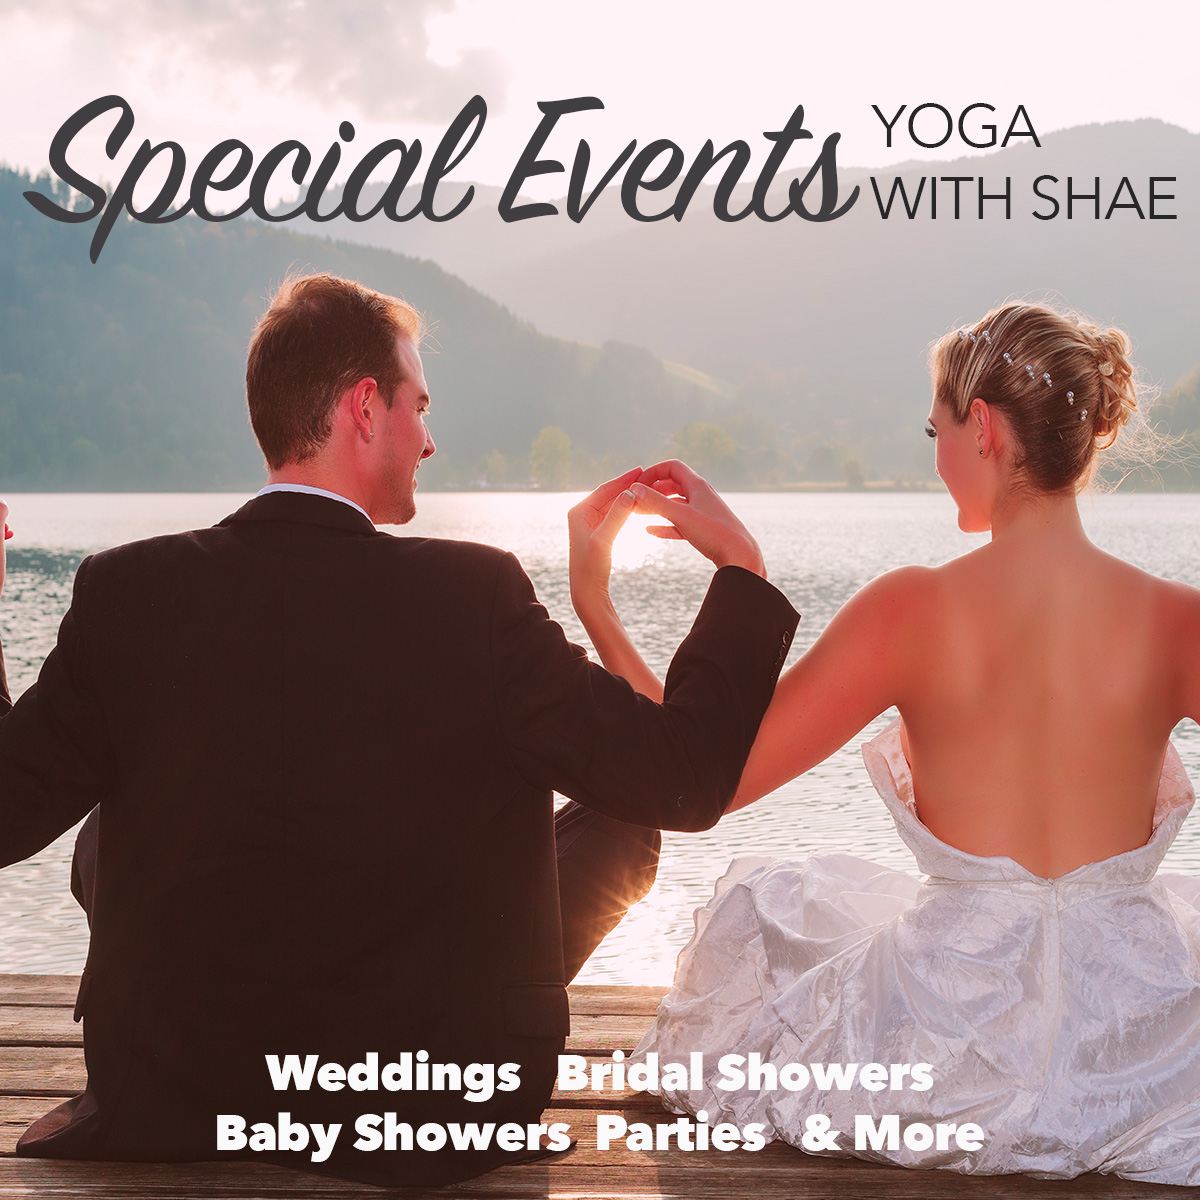 Special Event Yoga with Shae.jpg